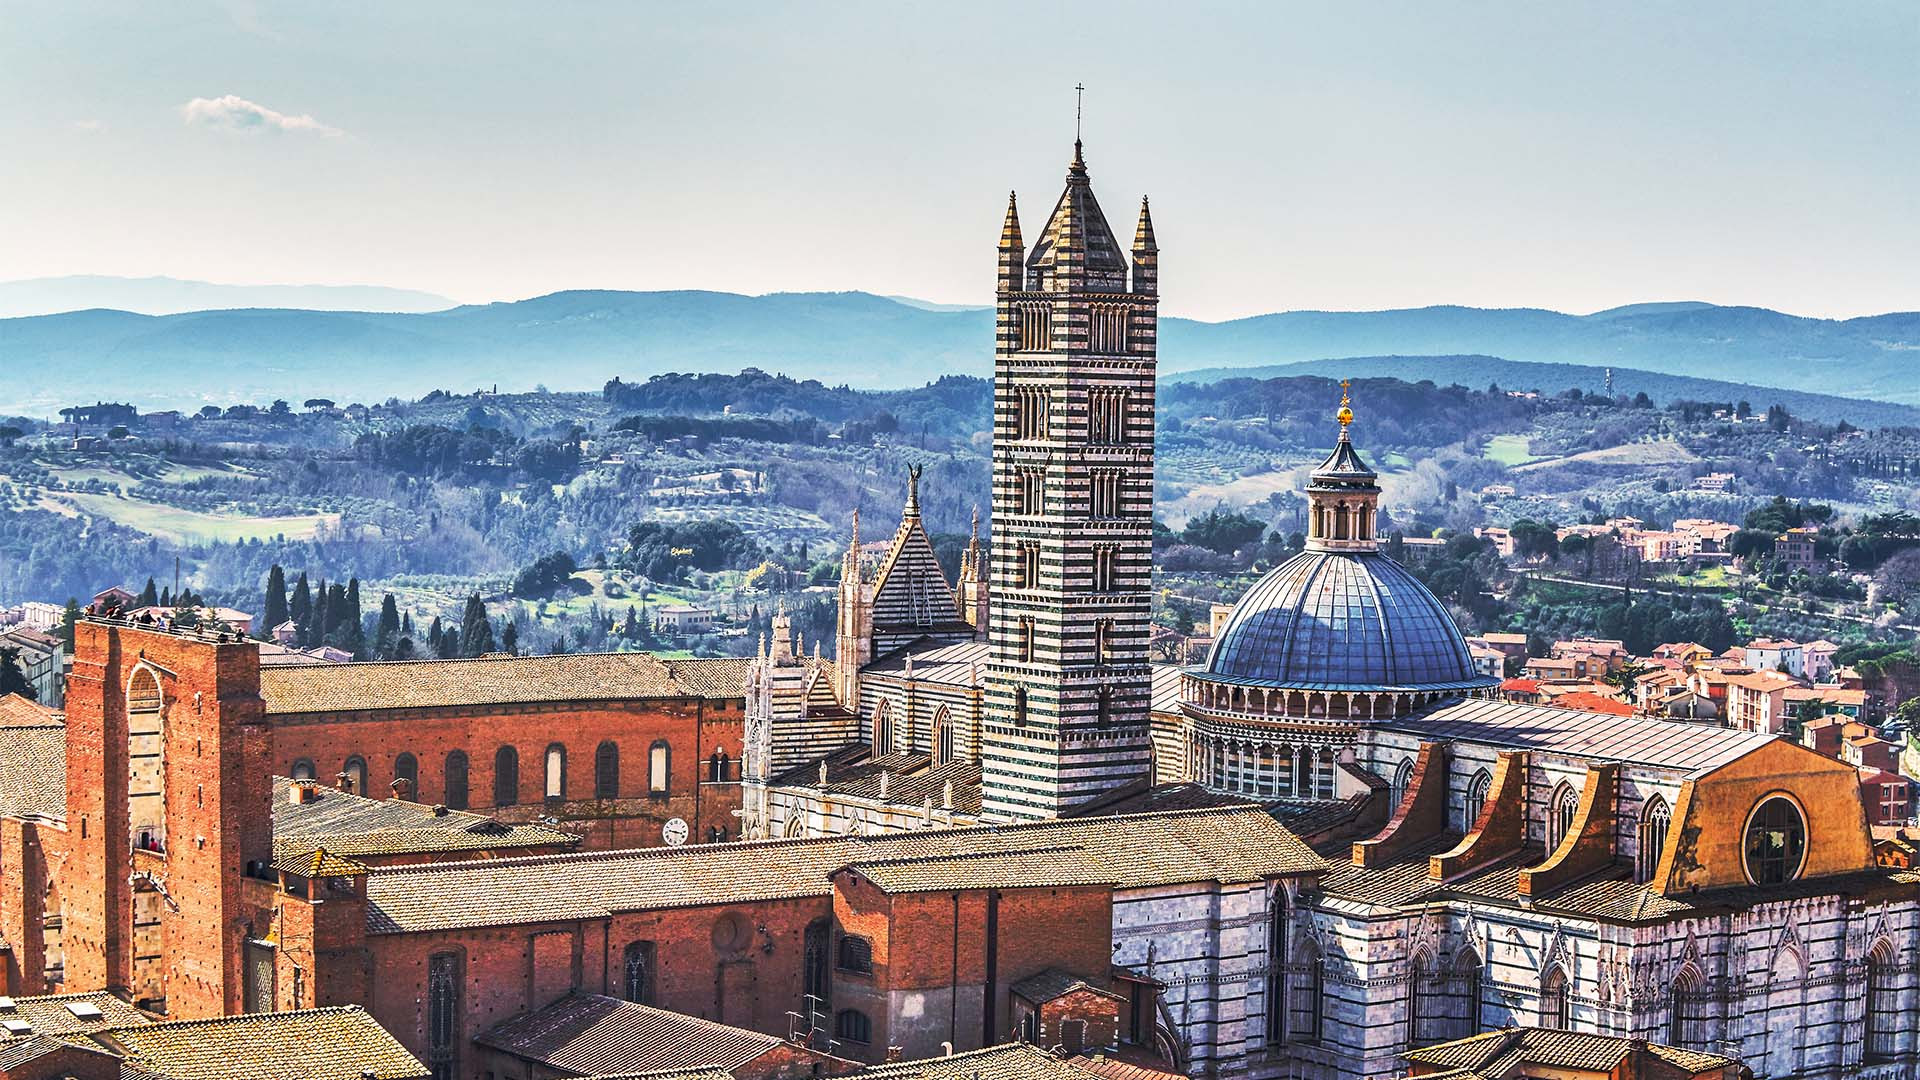 Rooftops and the Duomo, Siena, Italy